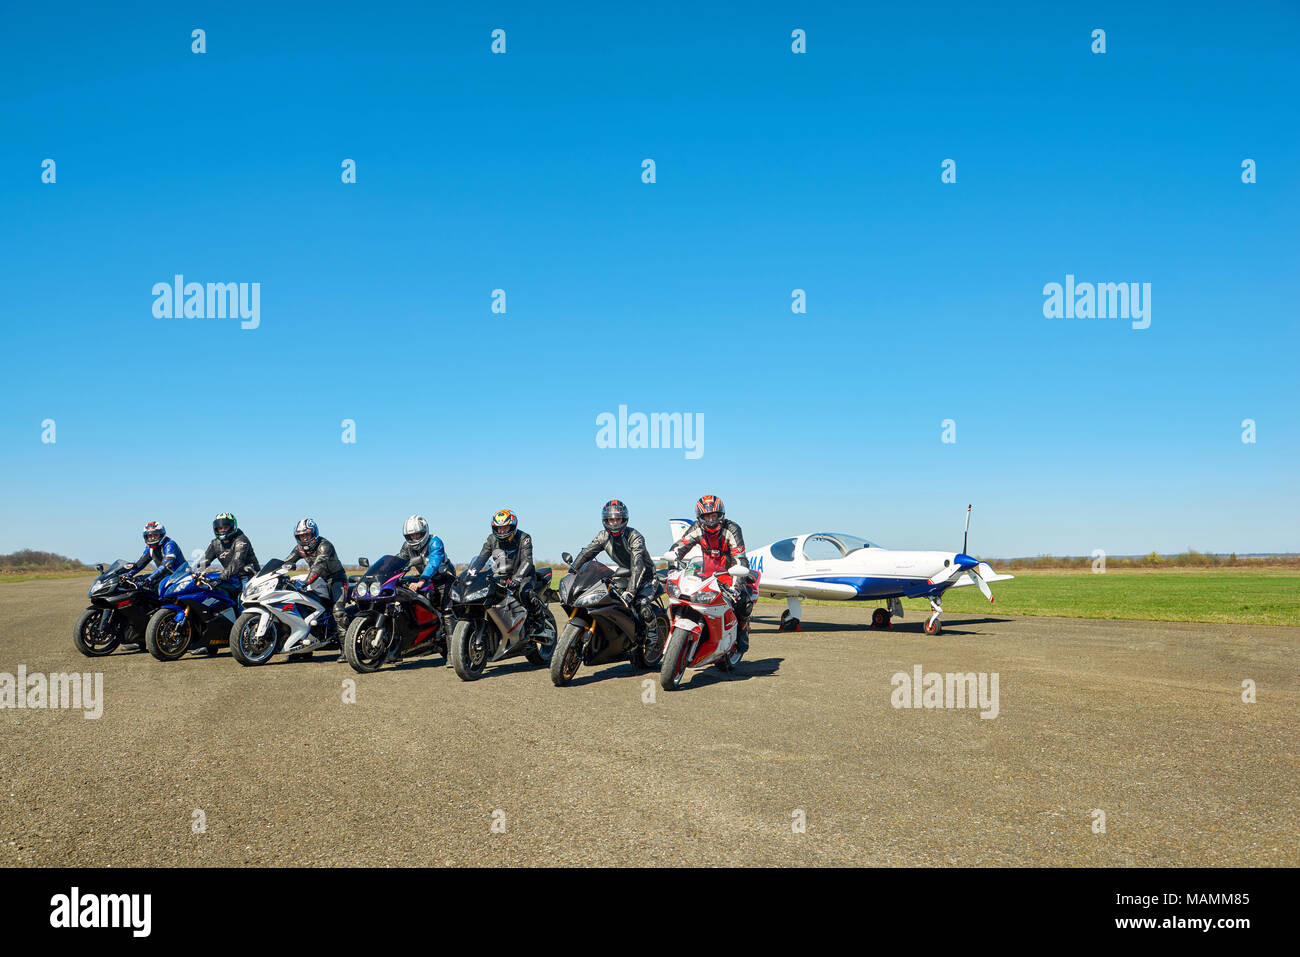 Kiev, Ukraine - 29 March 2017: Show from motoschool members. Seven riders wearing protective suits are sitting on motorcycles on blue skye's background. Little white plane behind them. - Stock Image